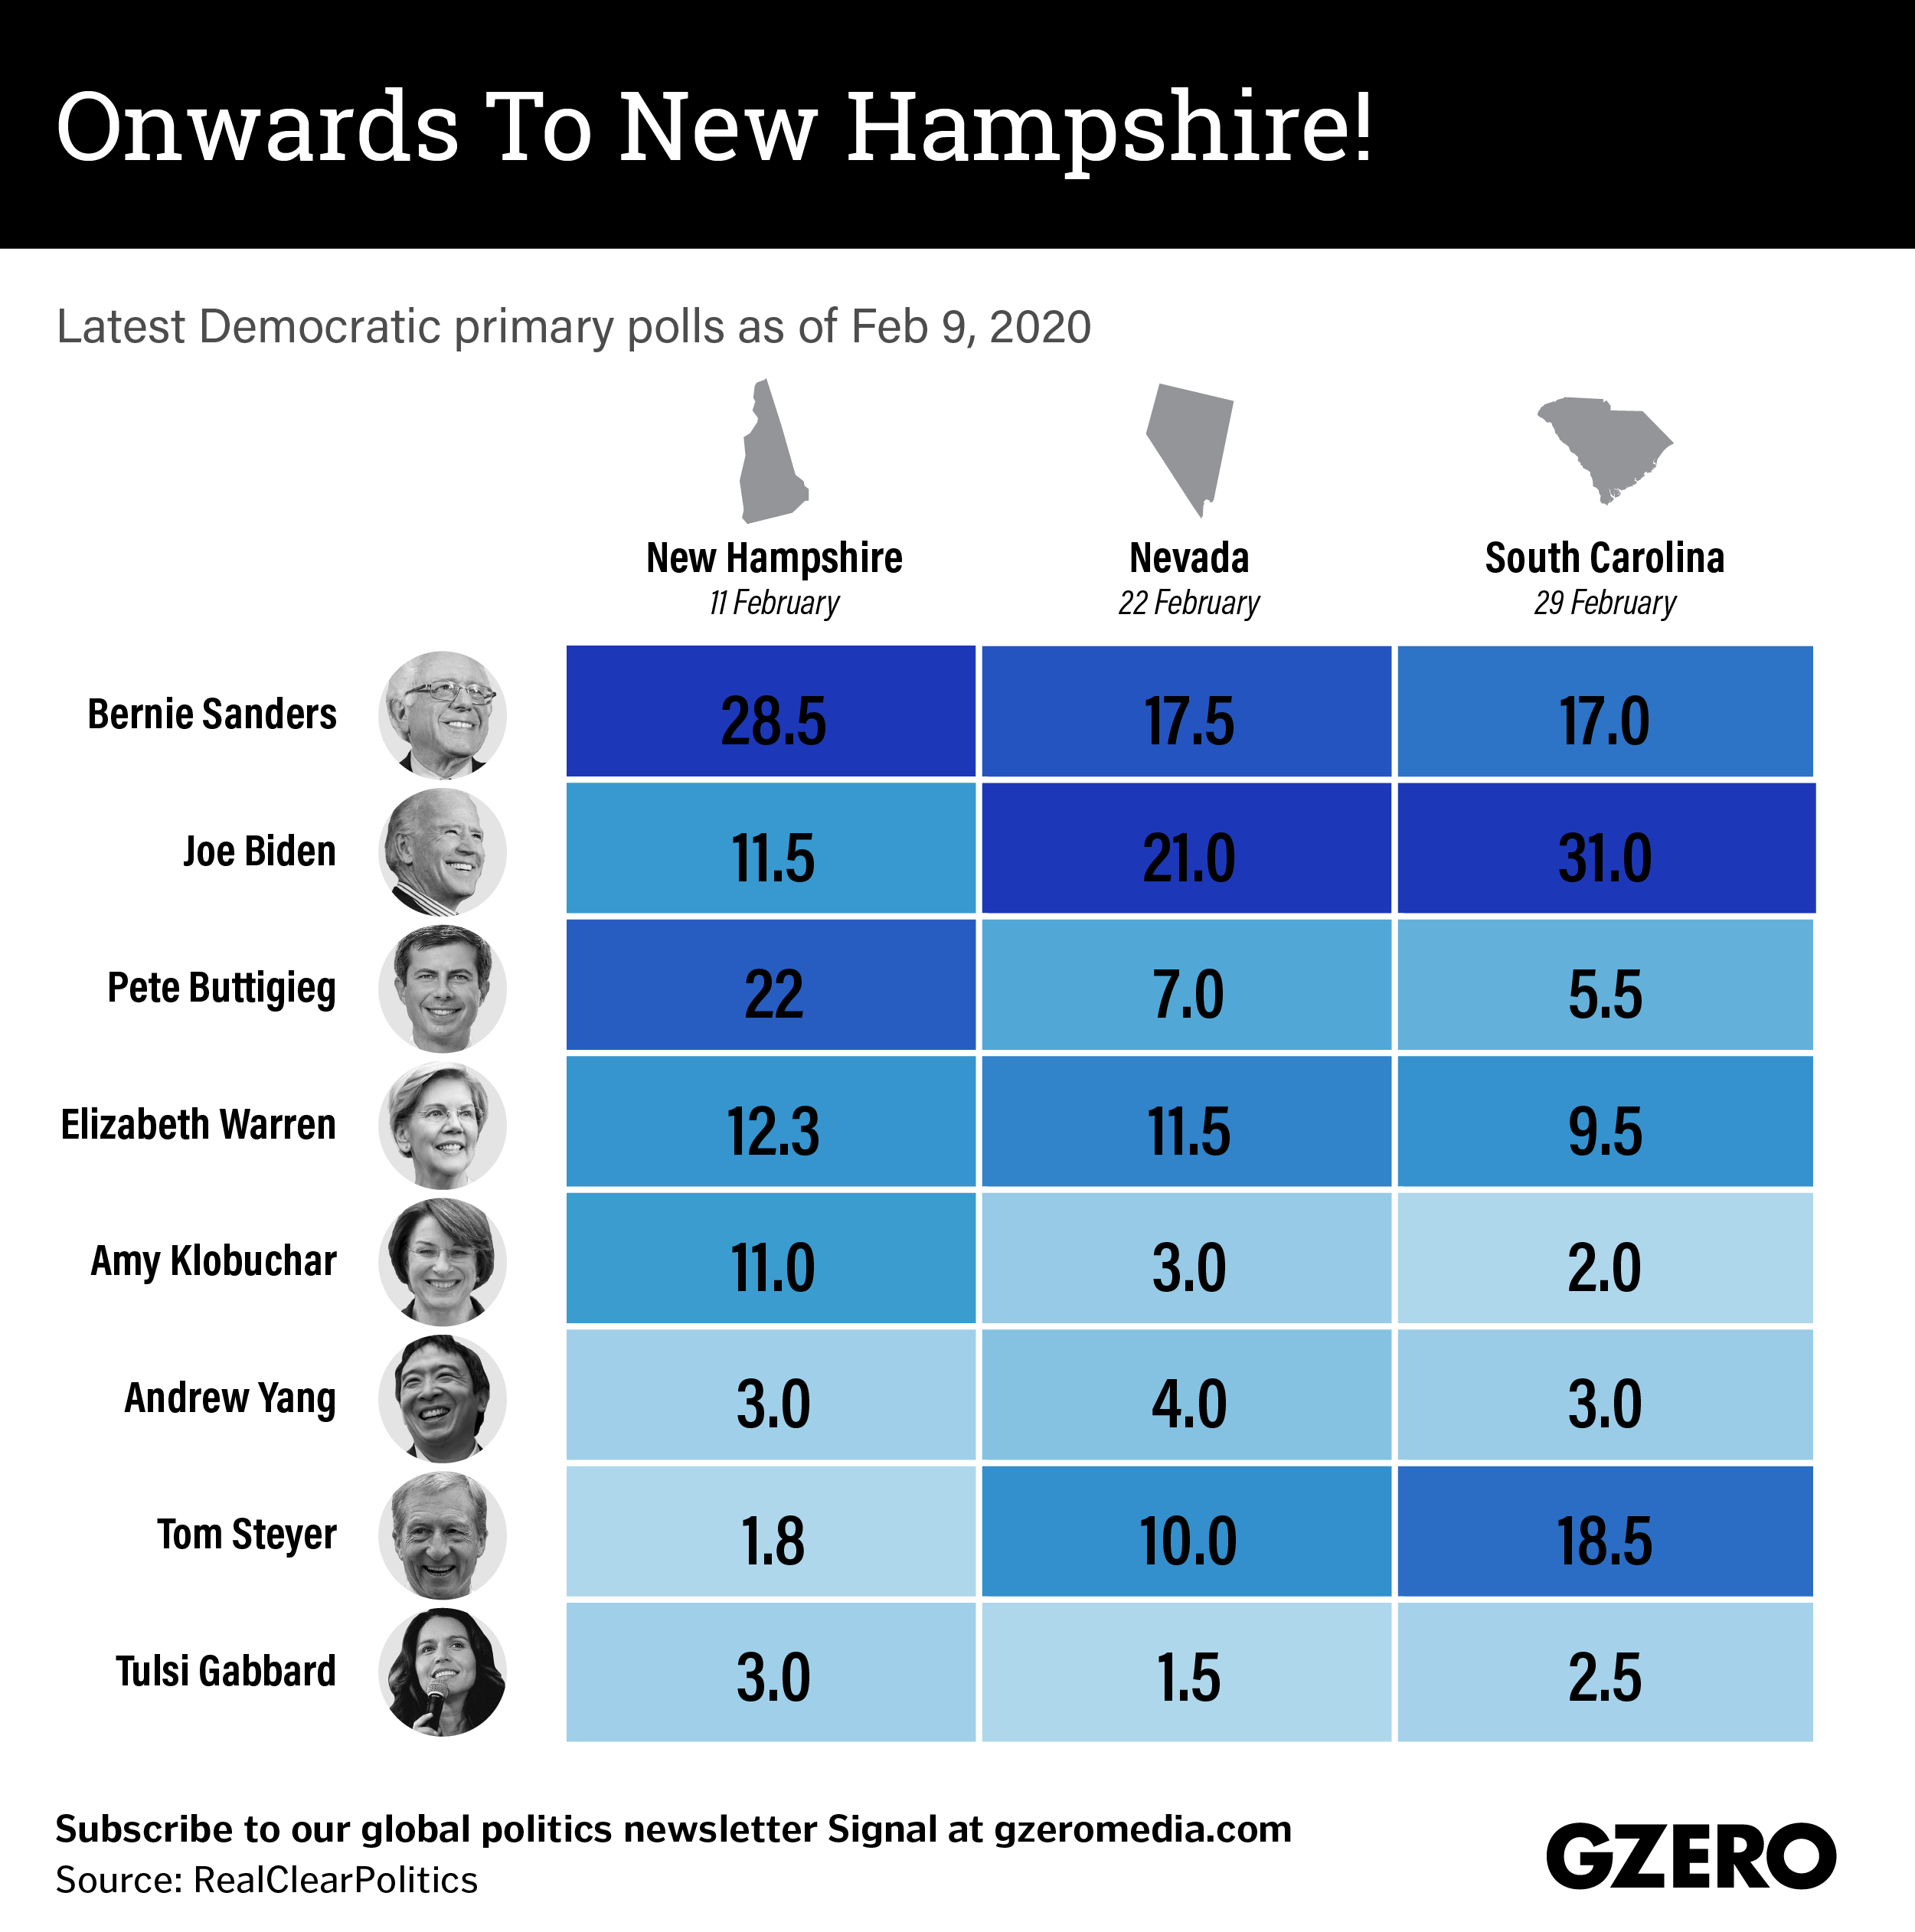 The Graphic Truth: Onwards to New Hampshire!